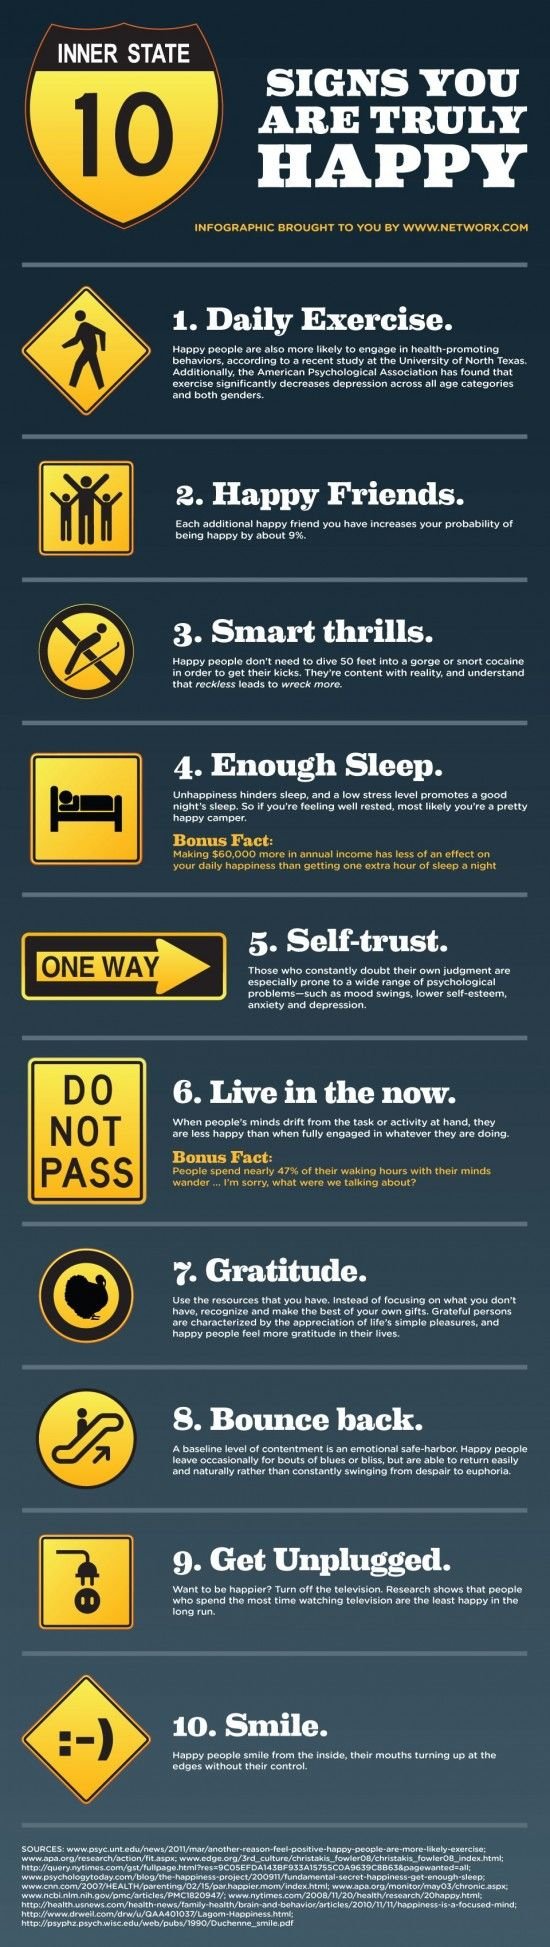 10 Signs of True Happiness Infographic! Love this! #happiness #infographic